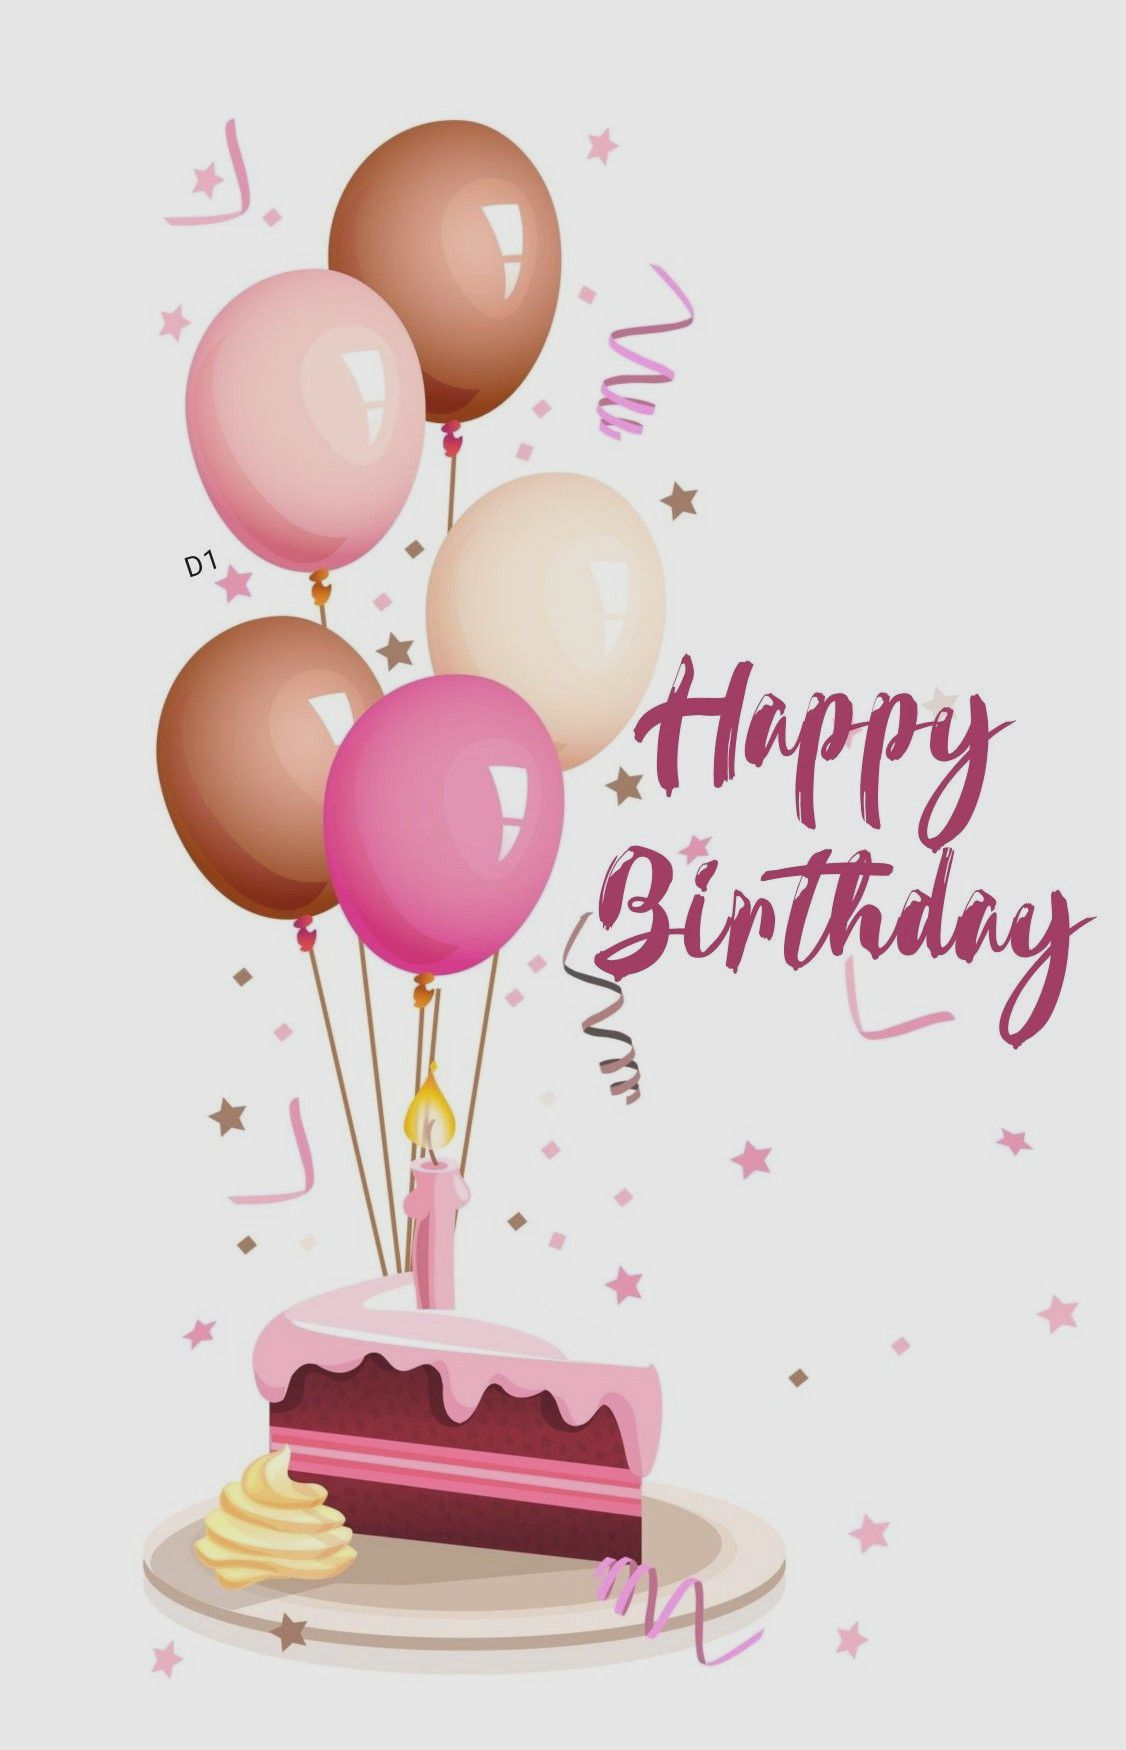 Birthday Gift Punjabi song Mp3 Download in 2020 Birthday